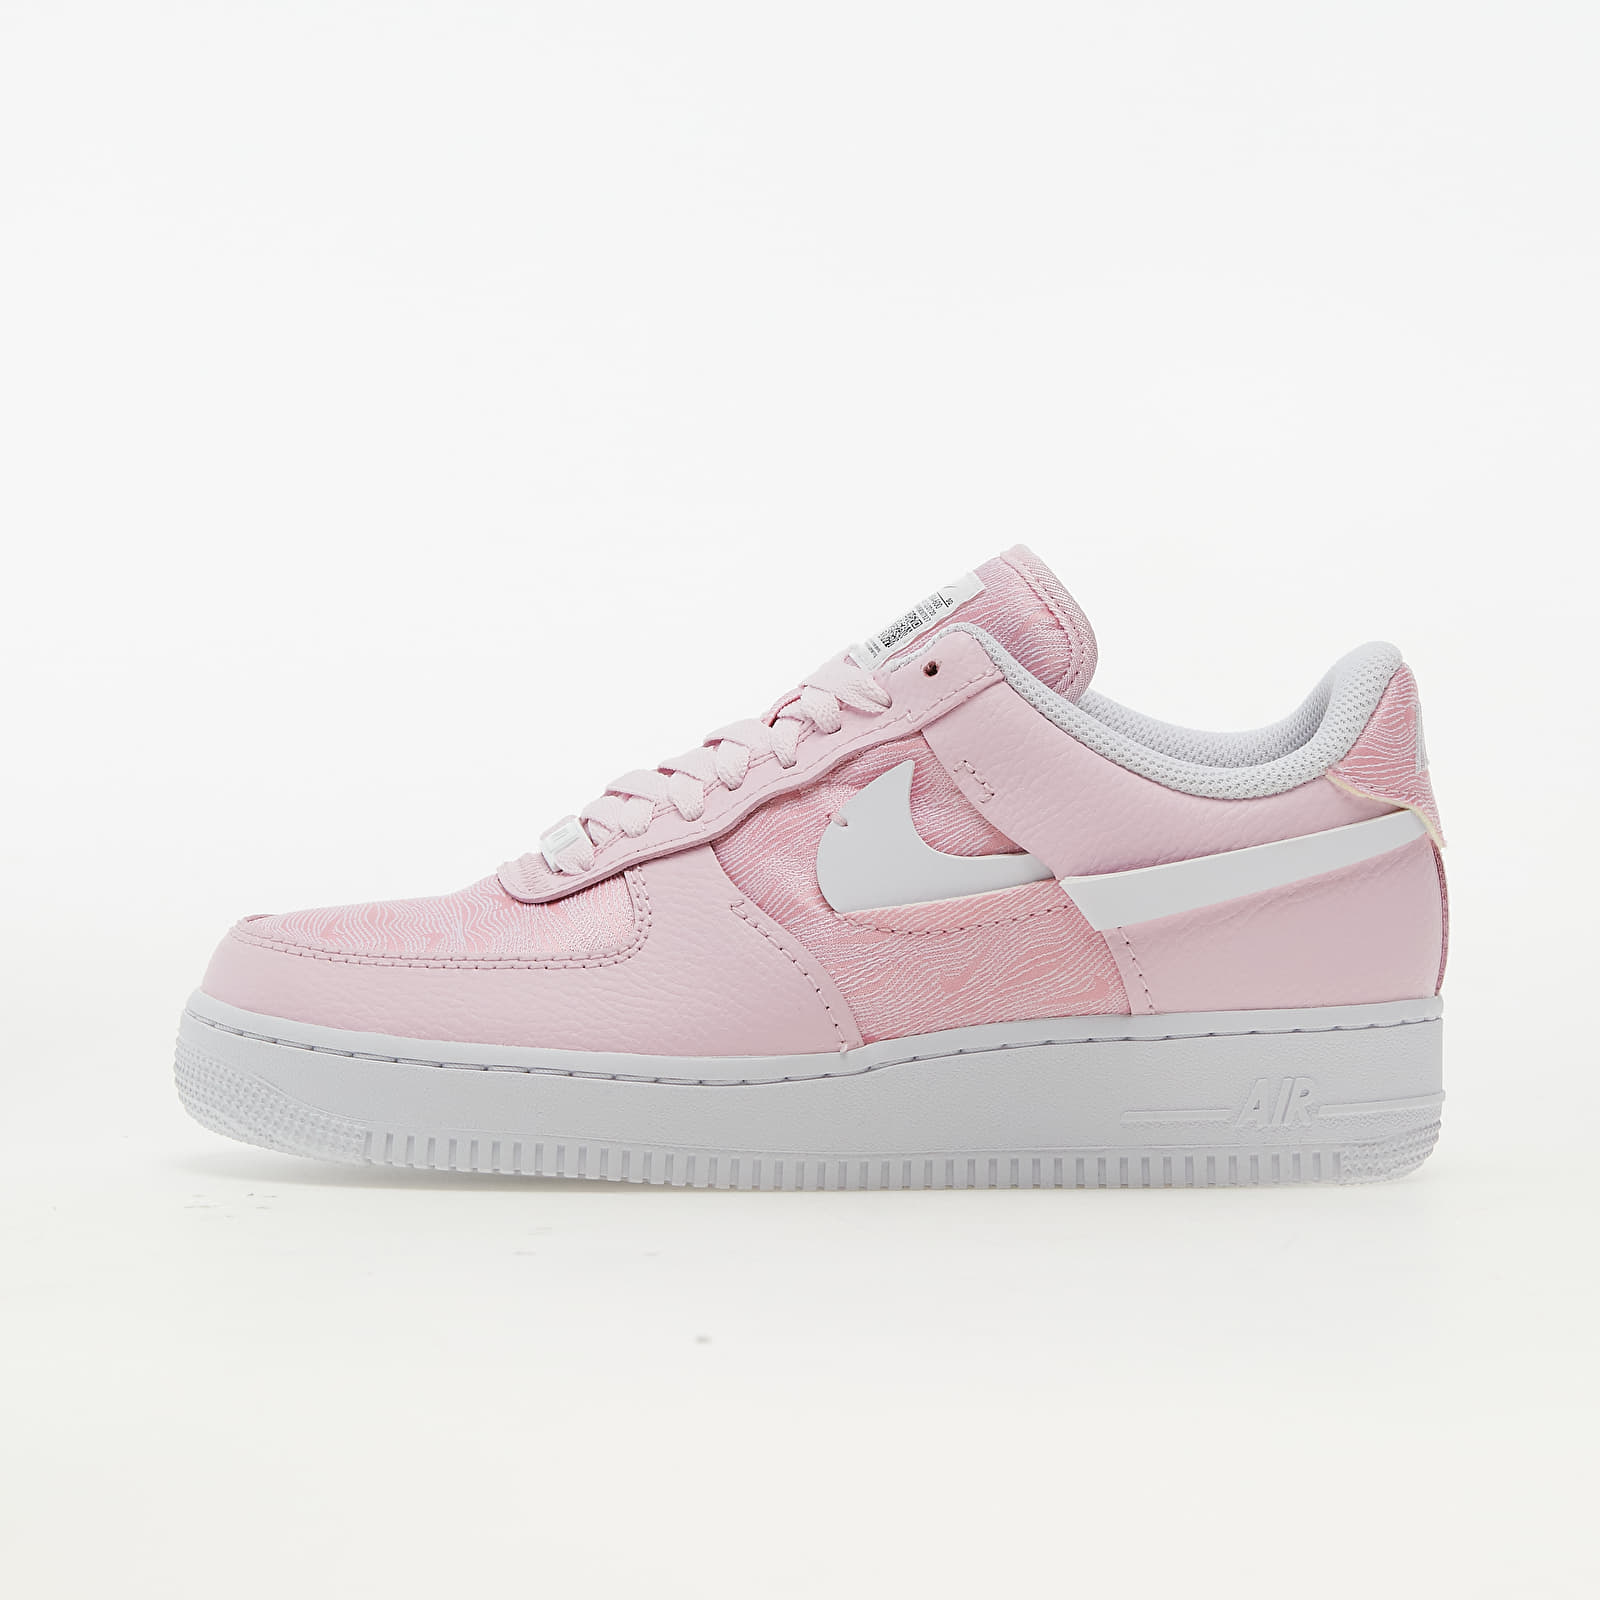 Nike Wmns Air Force 1 LXX Pink Foam / White-Black EUR 40